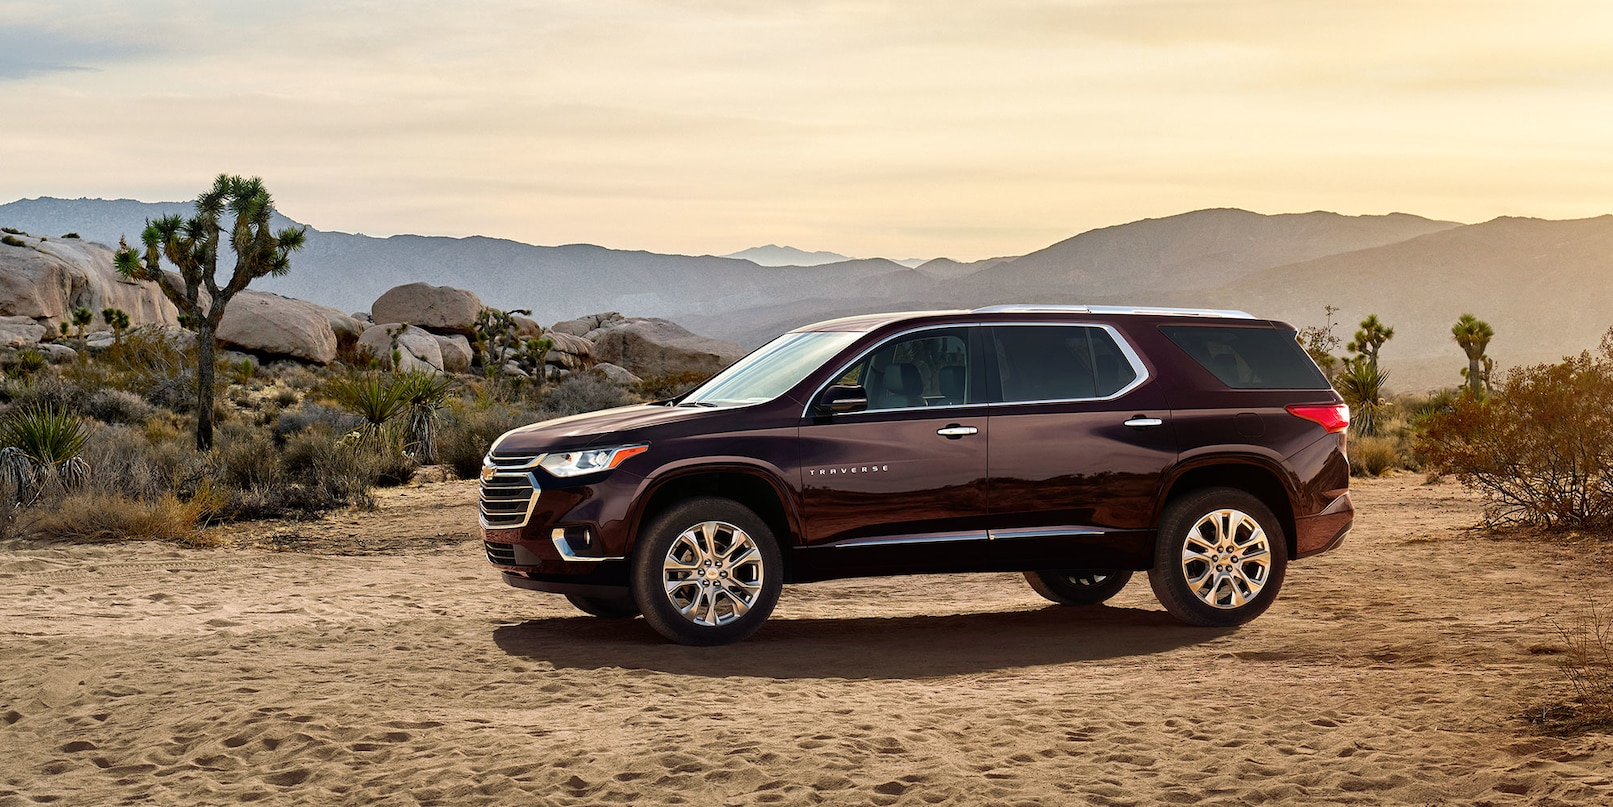 2019 Chevrolet Traverse Leasing near Vienna, VA